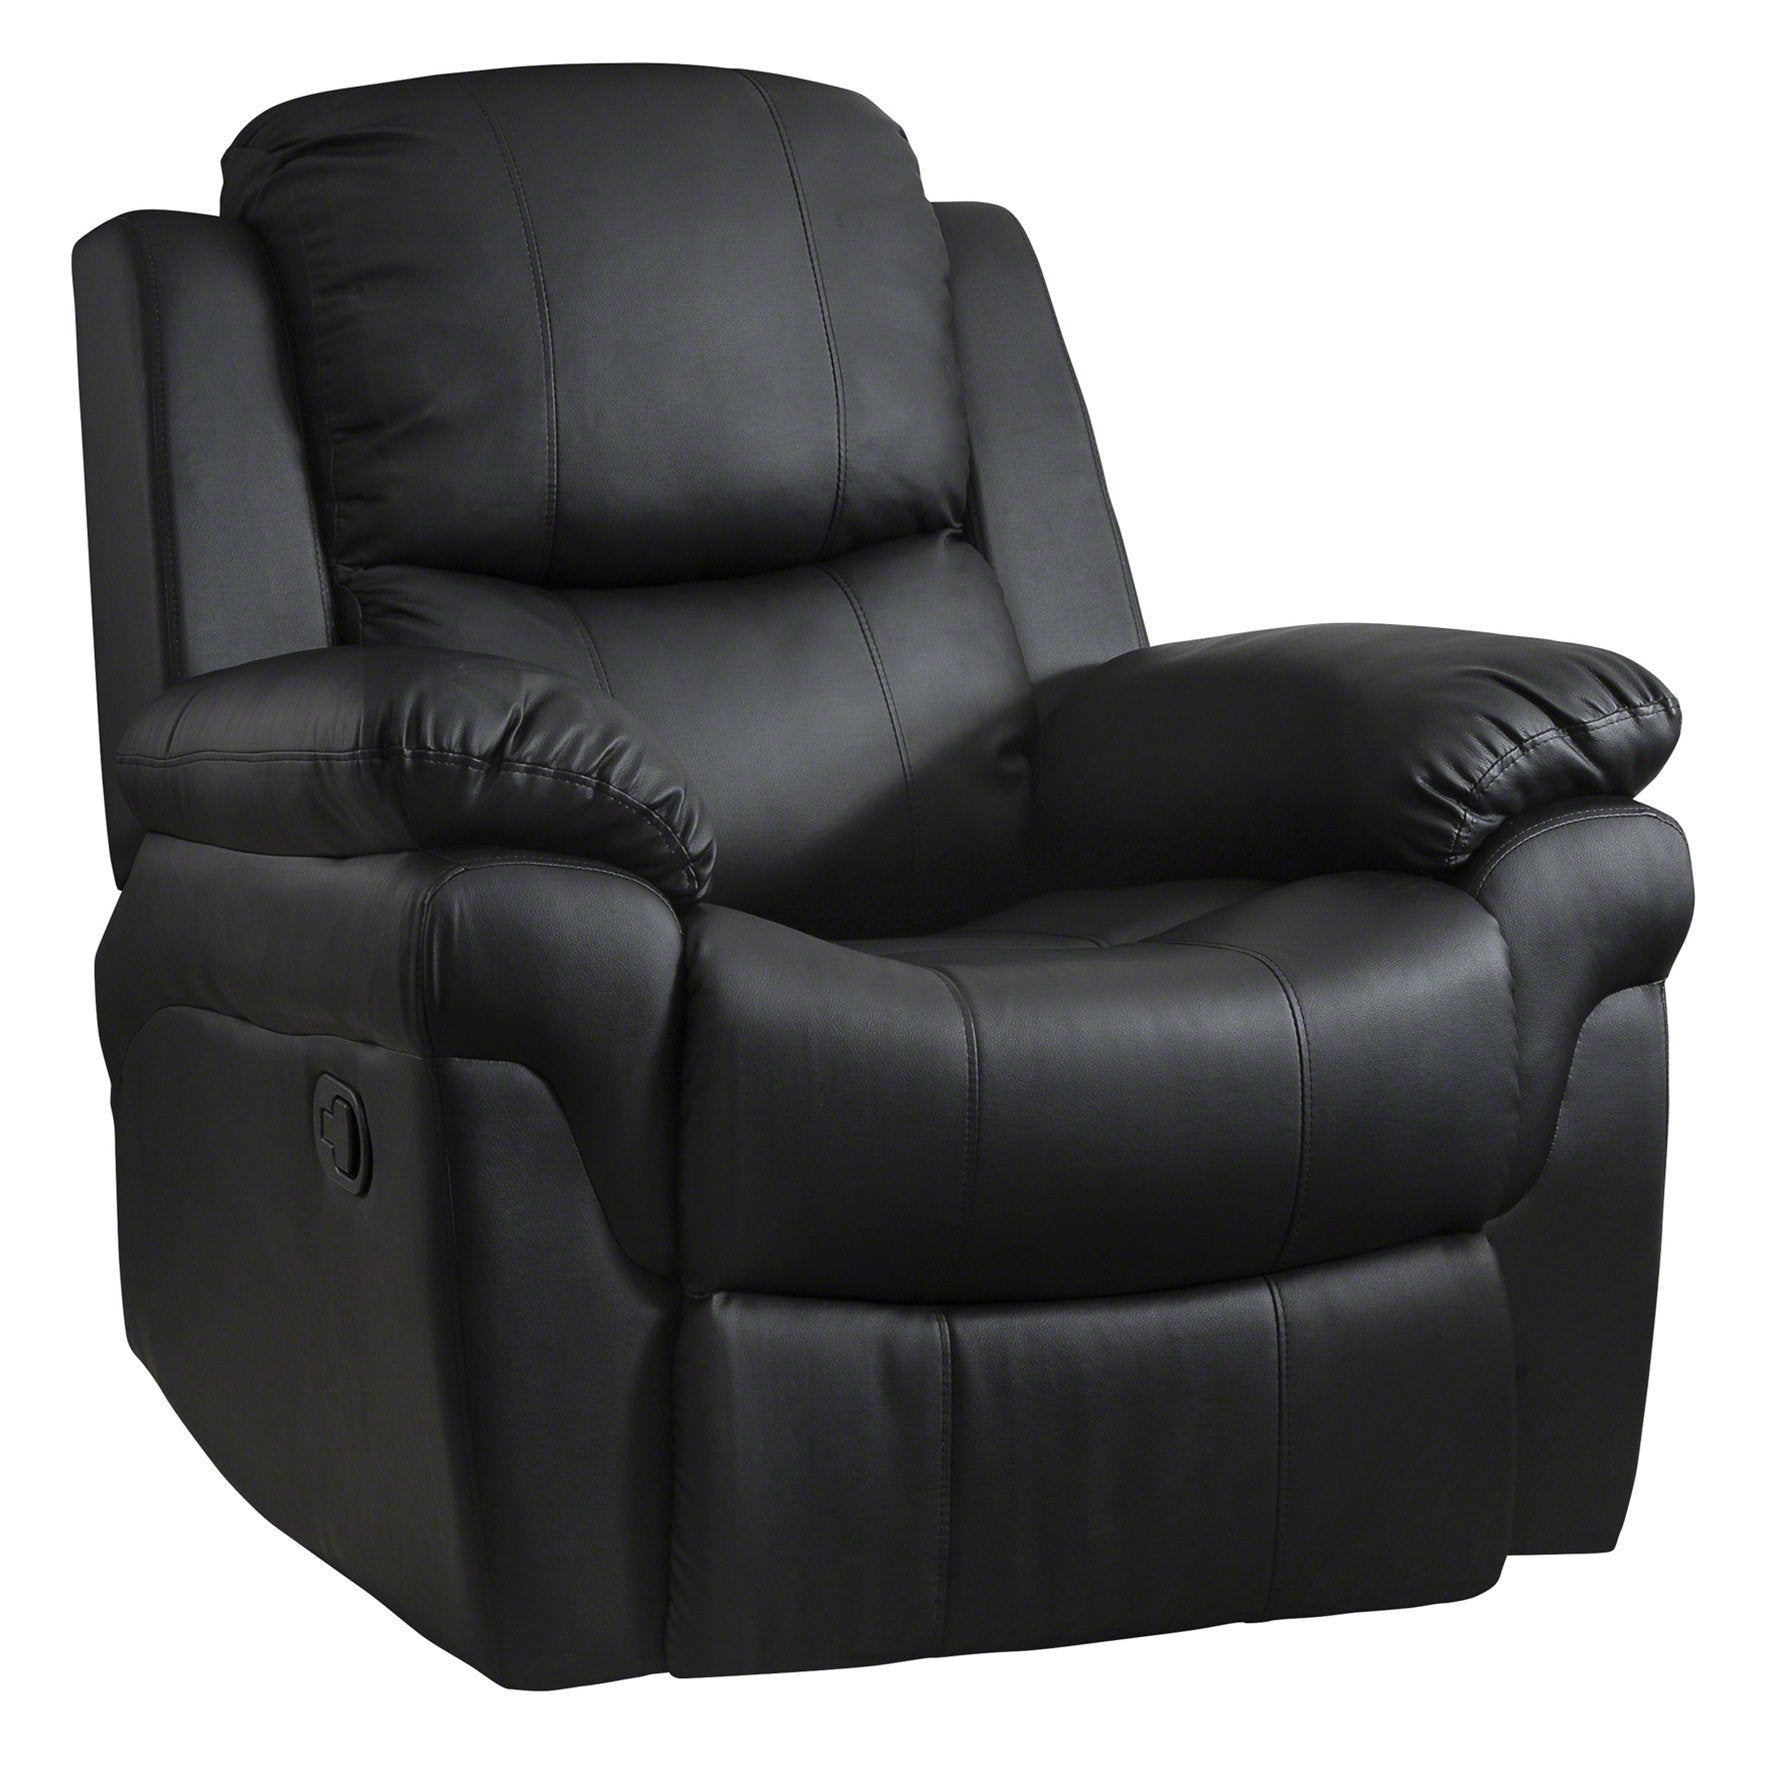 leather chair black ezra executive